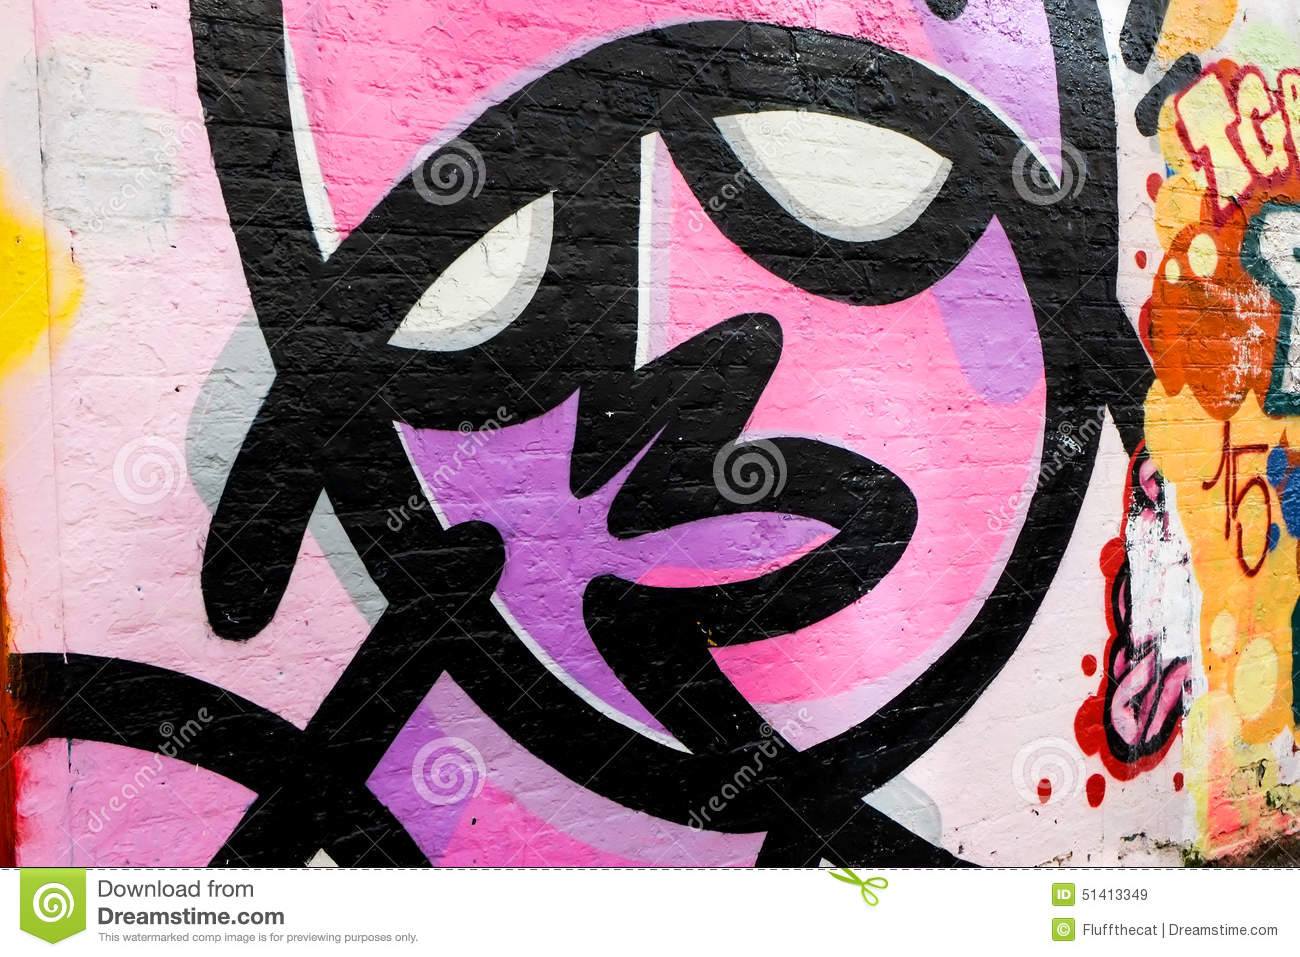 Graffiti wall art simple face design in black lines and magenta and pink paintlondon uk